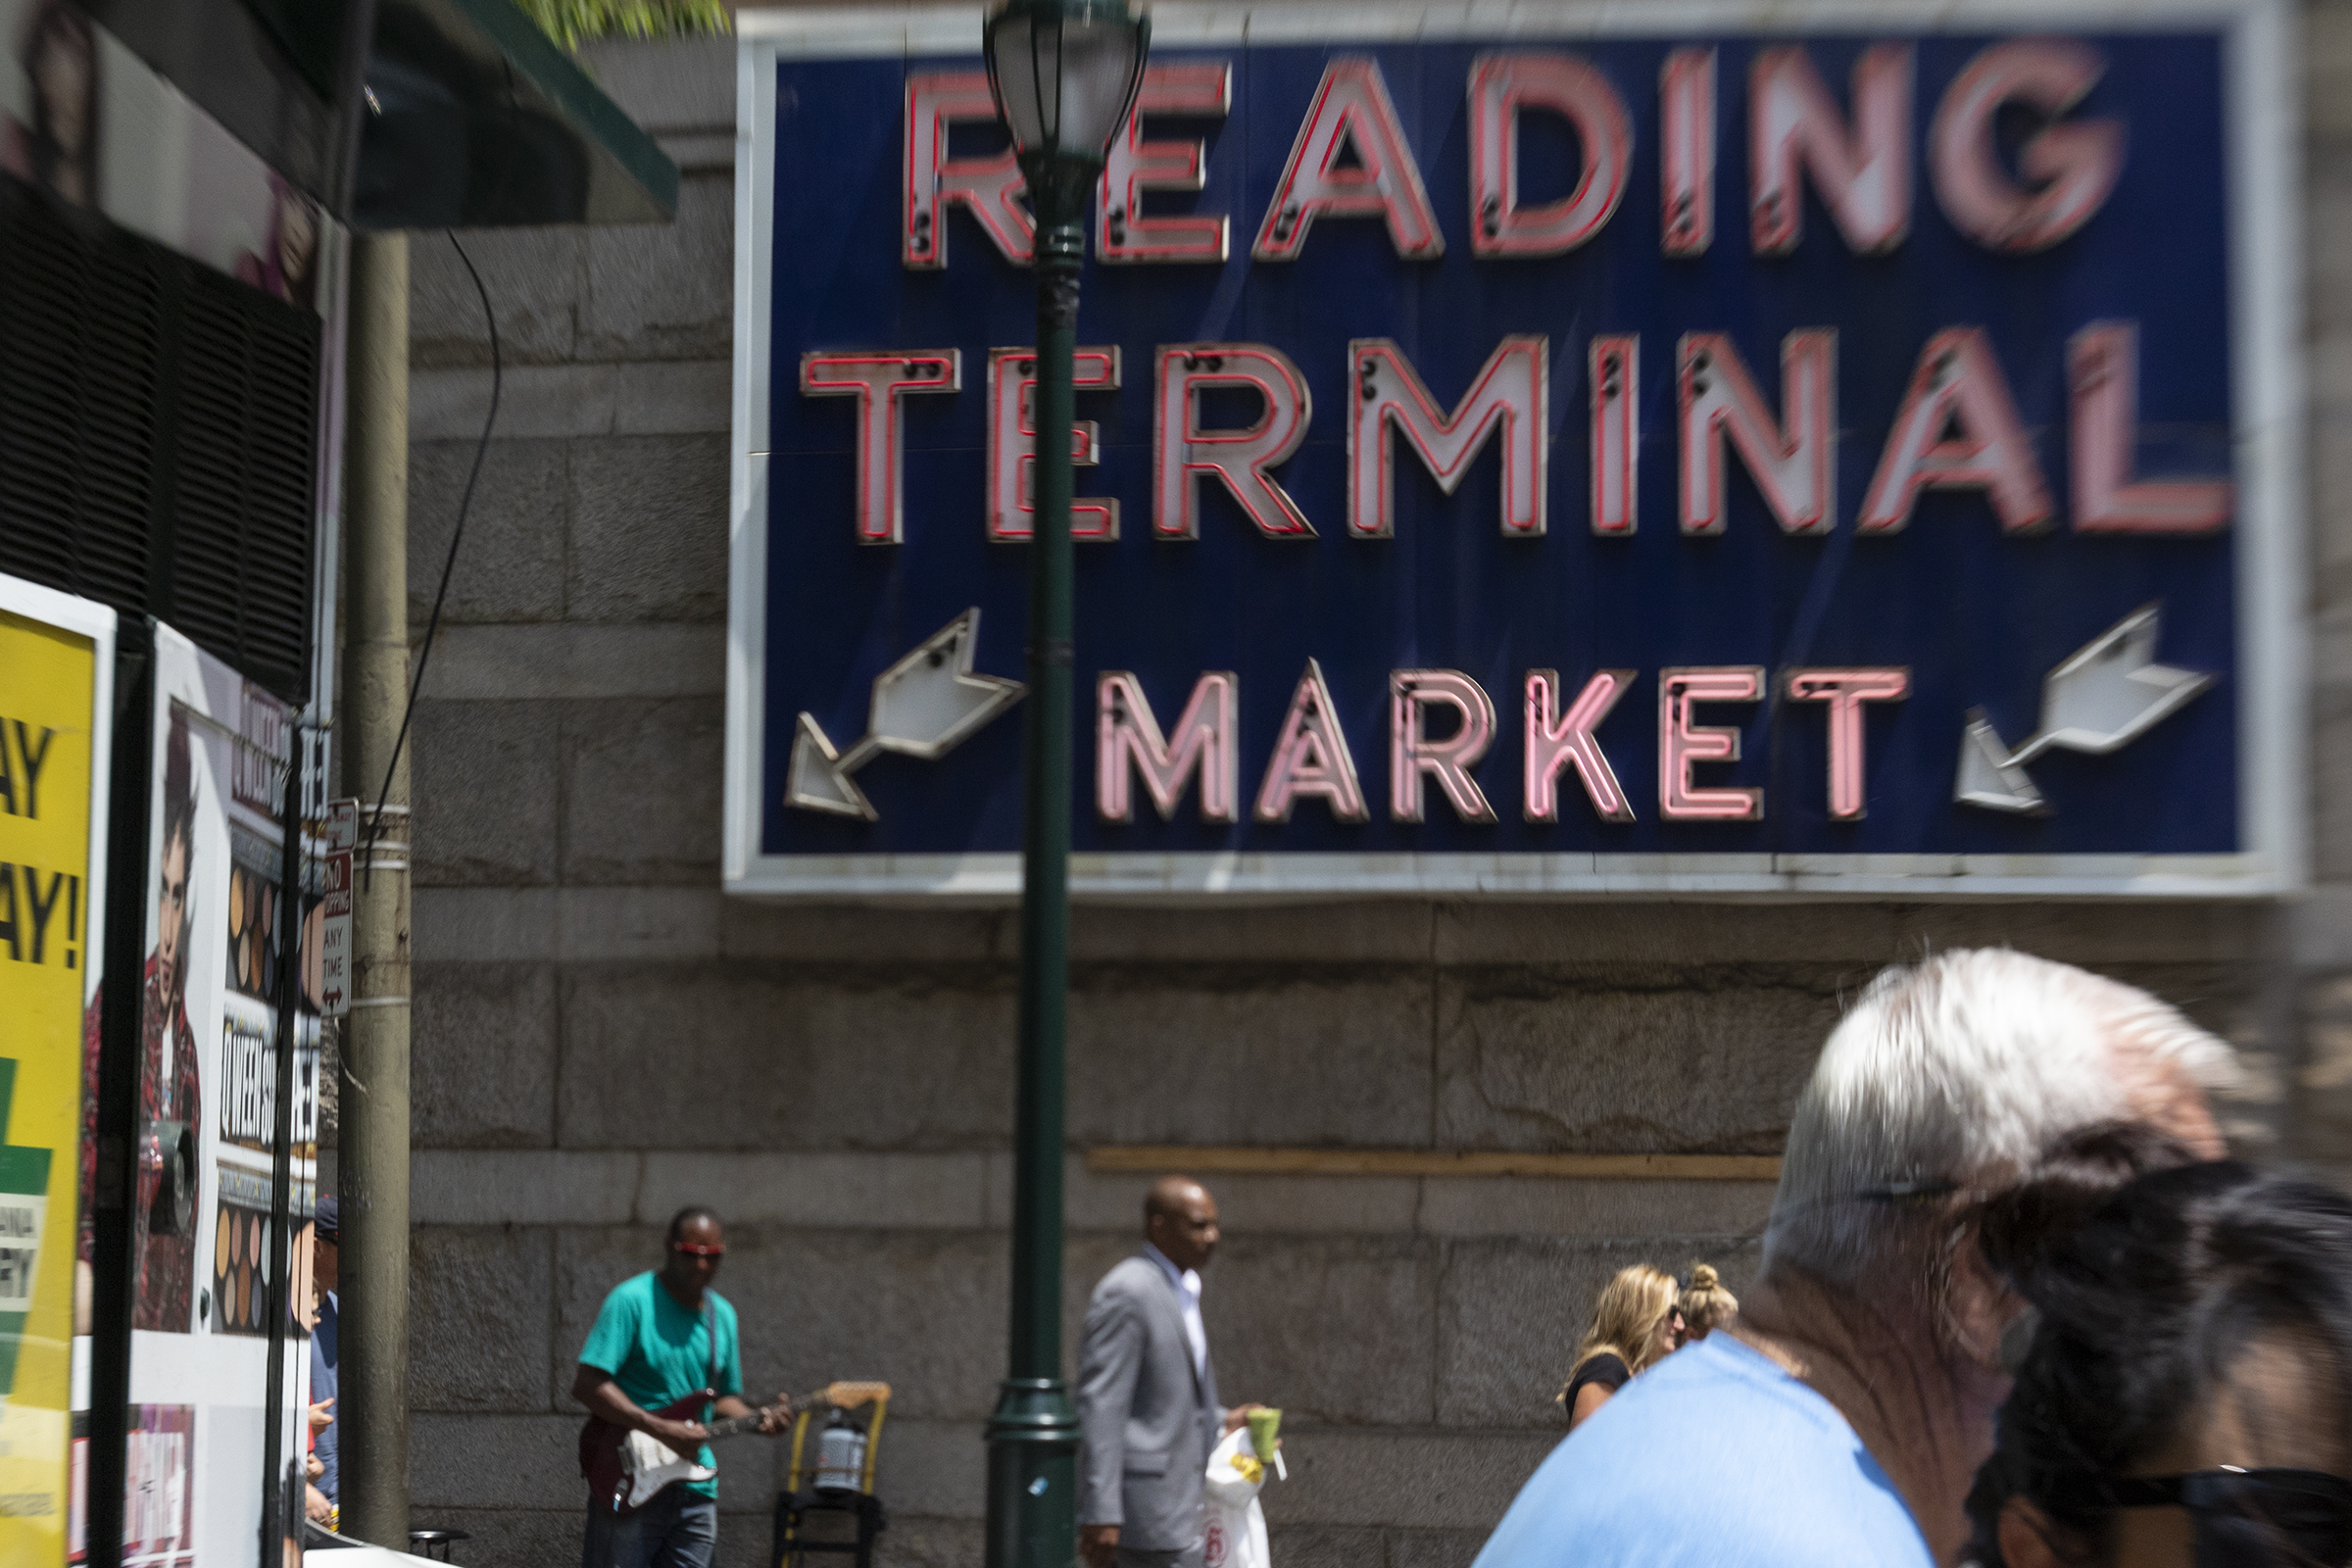 People walk by a sign pointing towards Reading Terminal Market at 51 N. 12th St. on July 27, 2018.